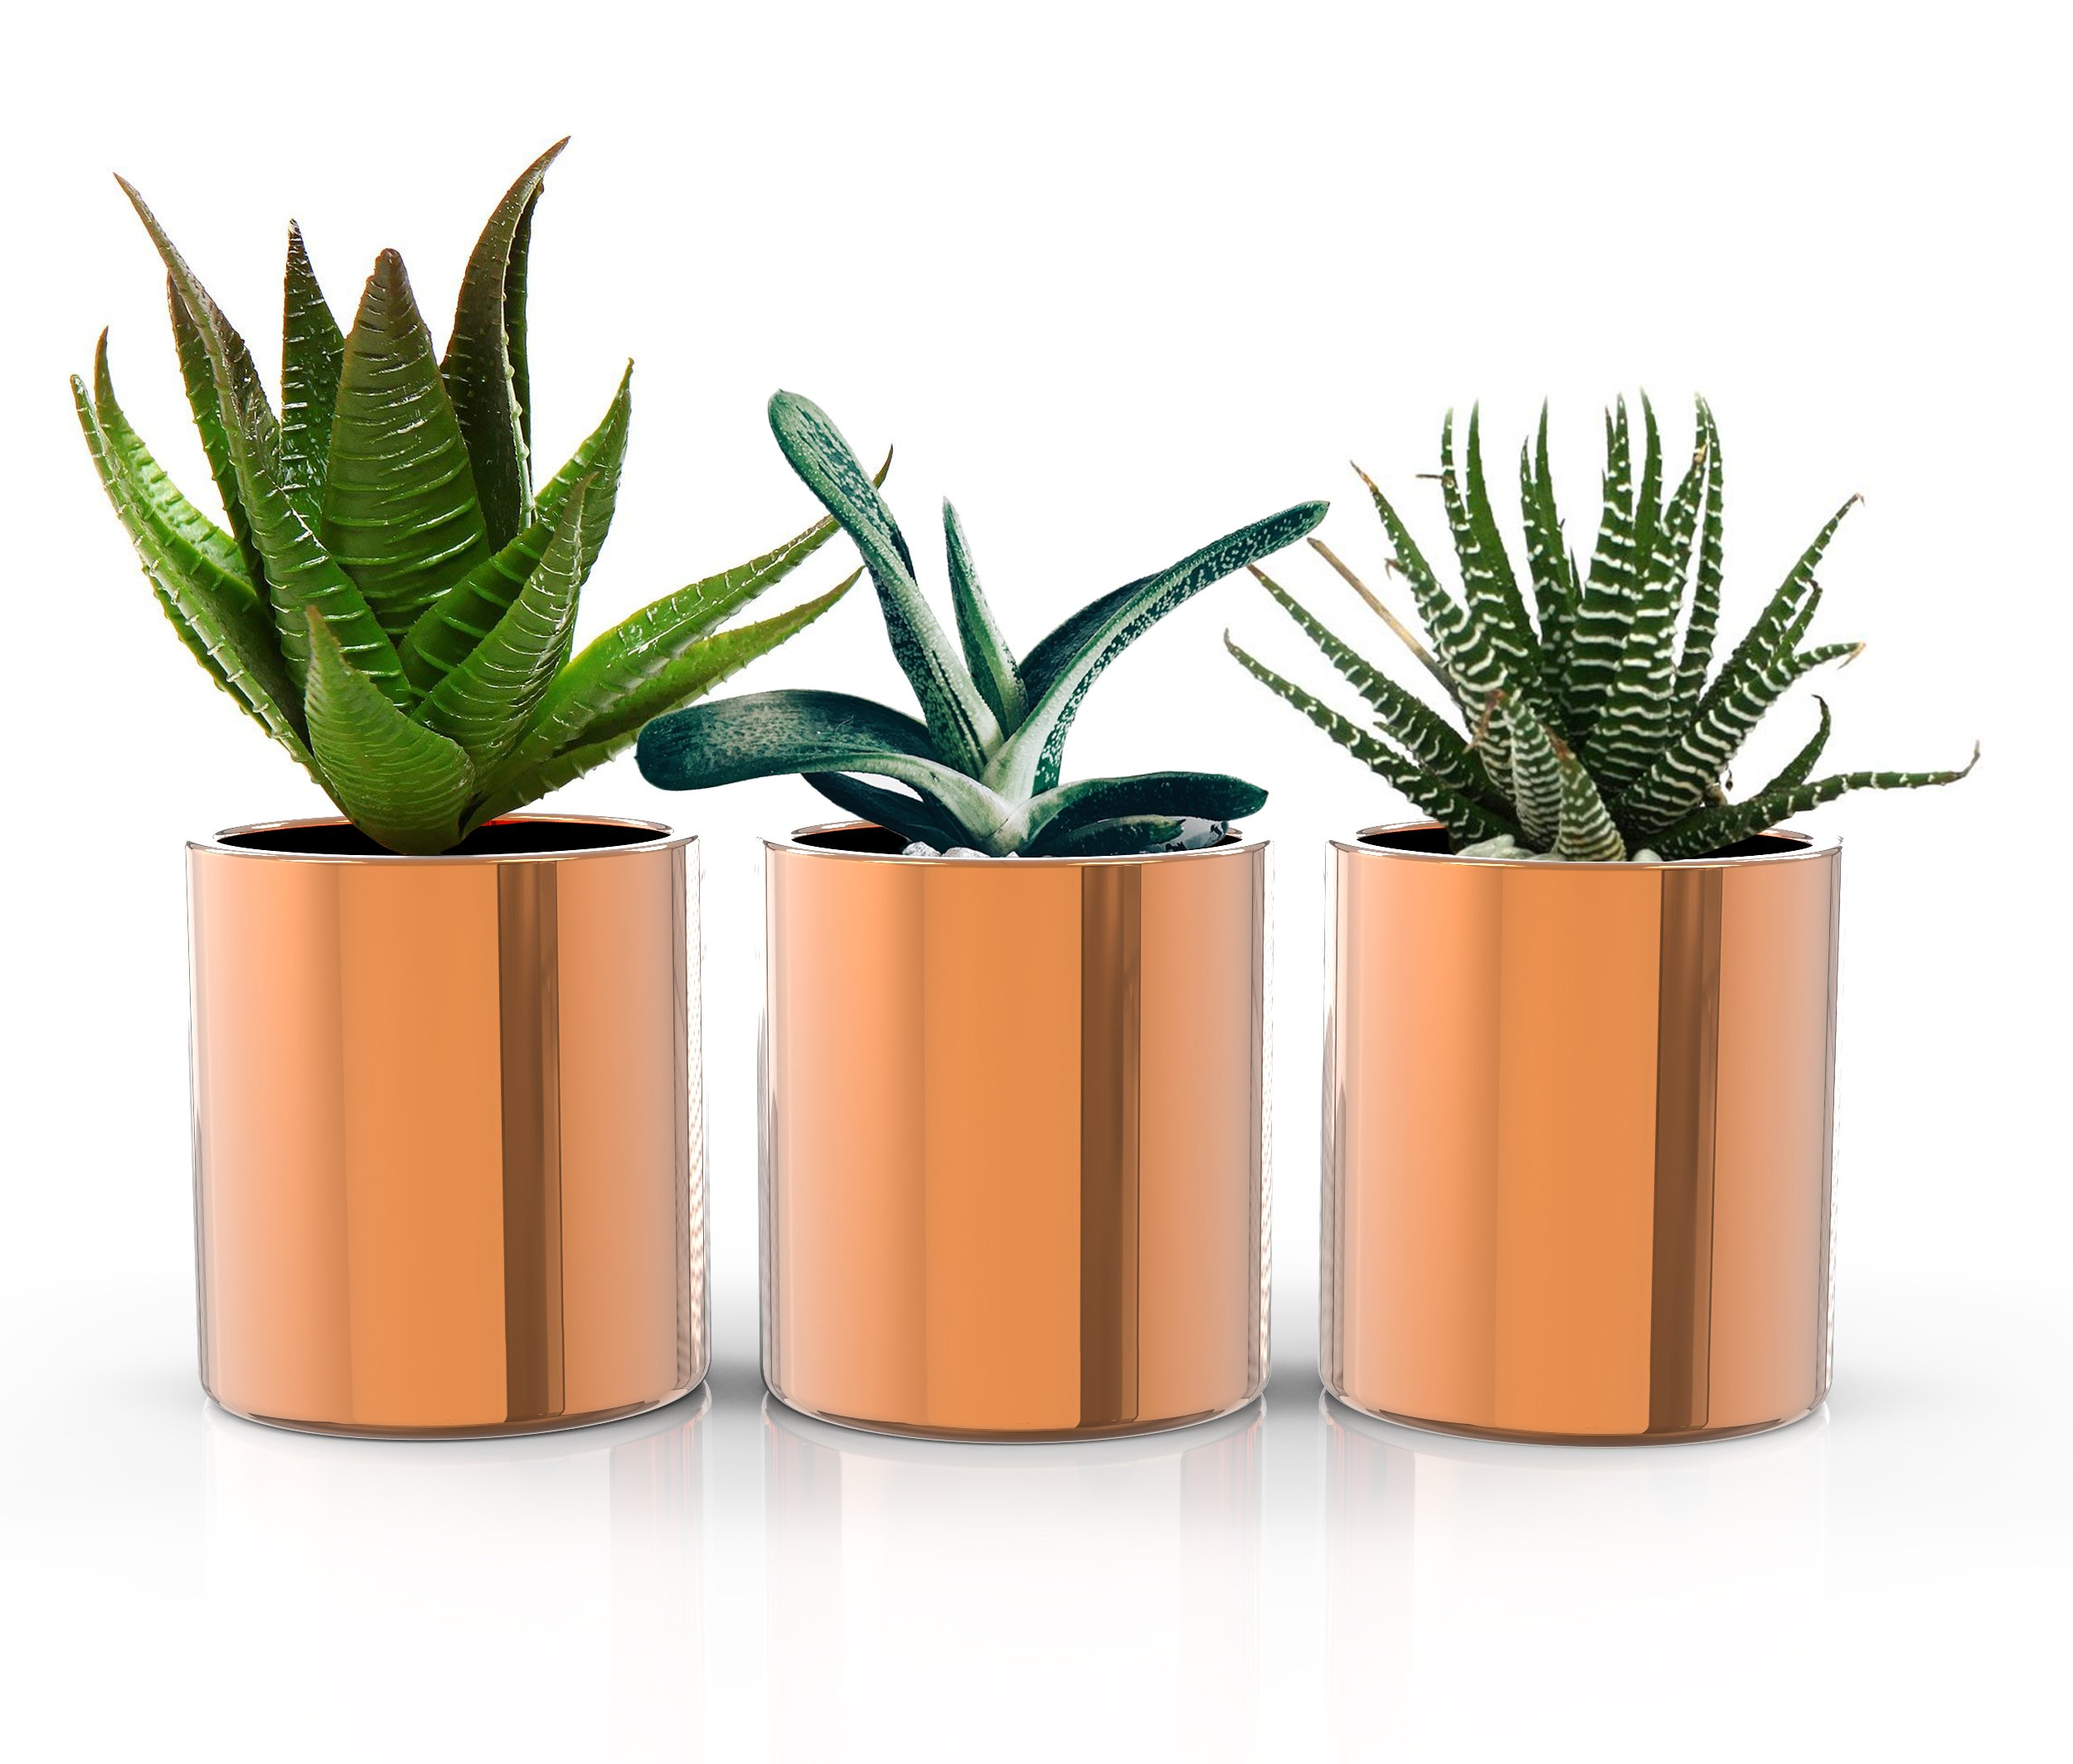 STRATFIELD HOME DESIGN Copper Succulent Plant Pots - Premium Set of 3 Mini Indoor Planters - Perfect home decor for succulents, cactus plants, and herb gardens!